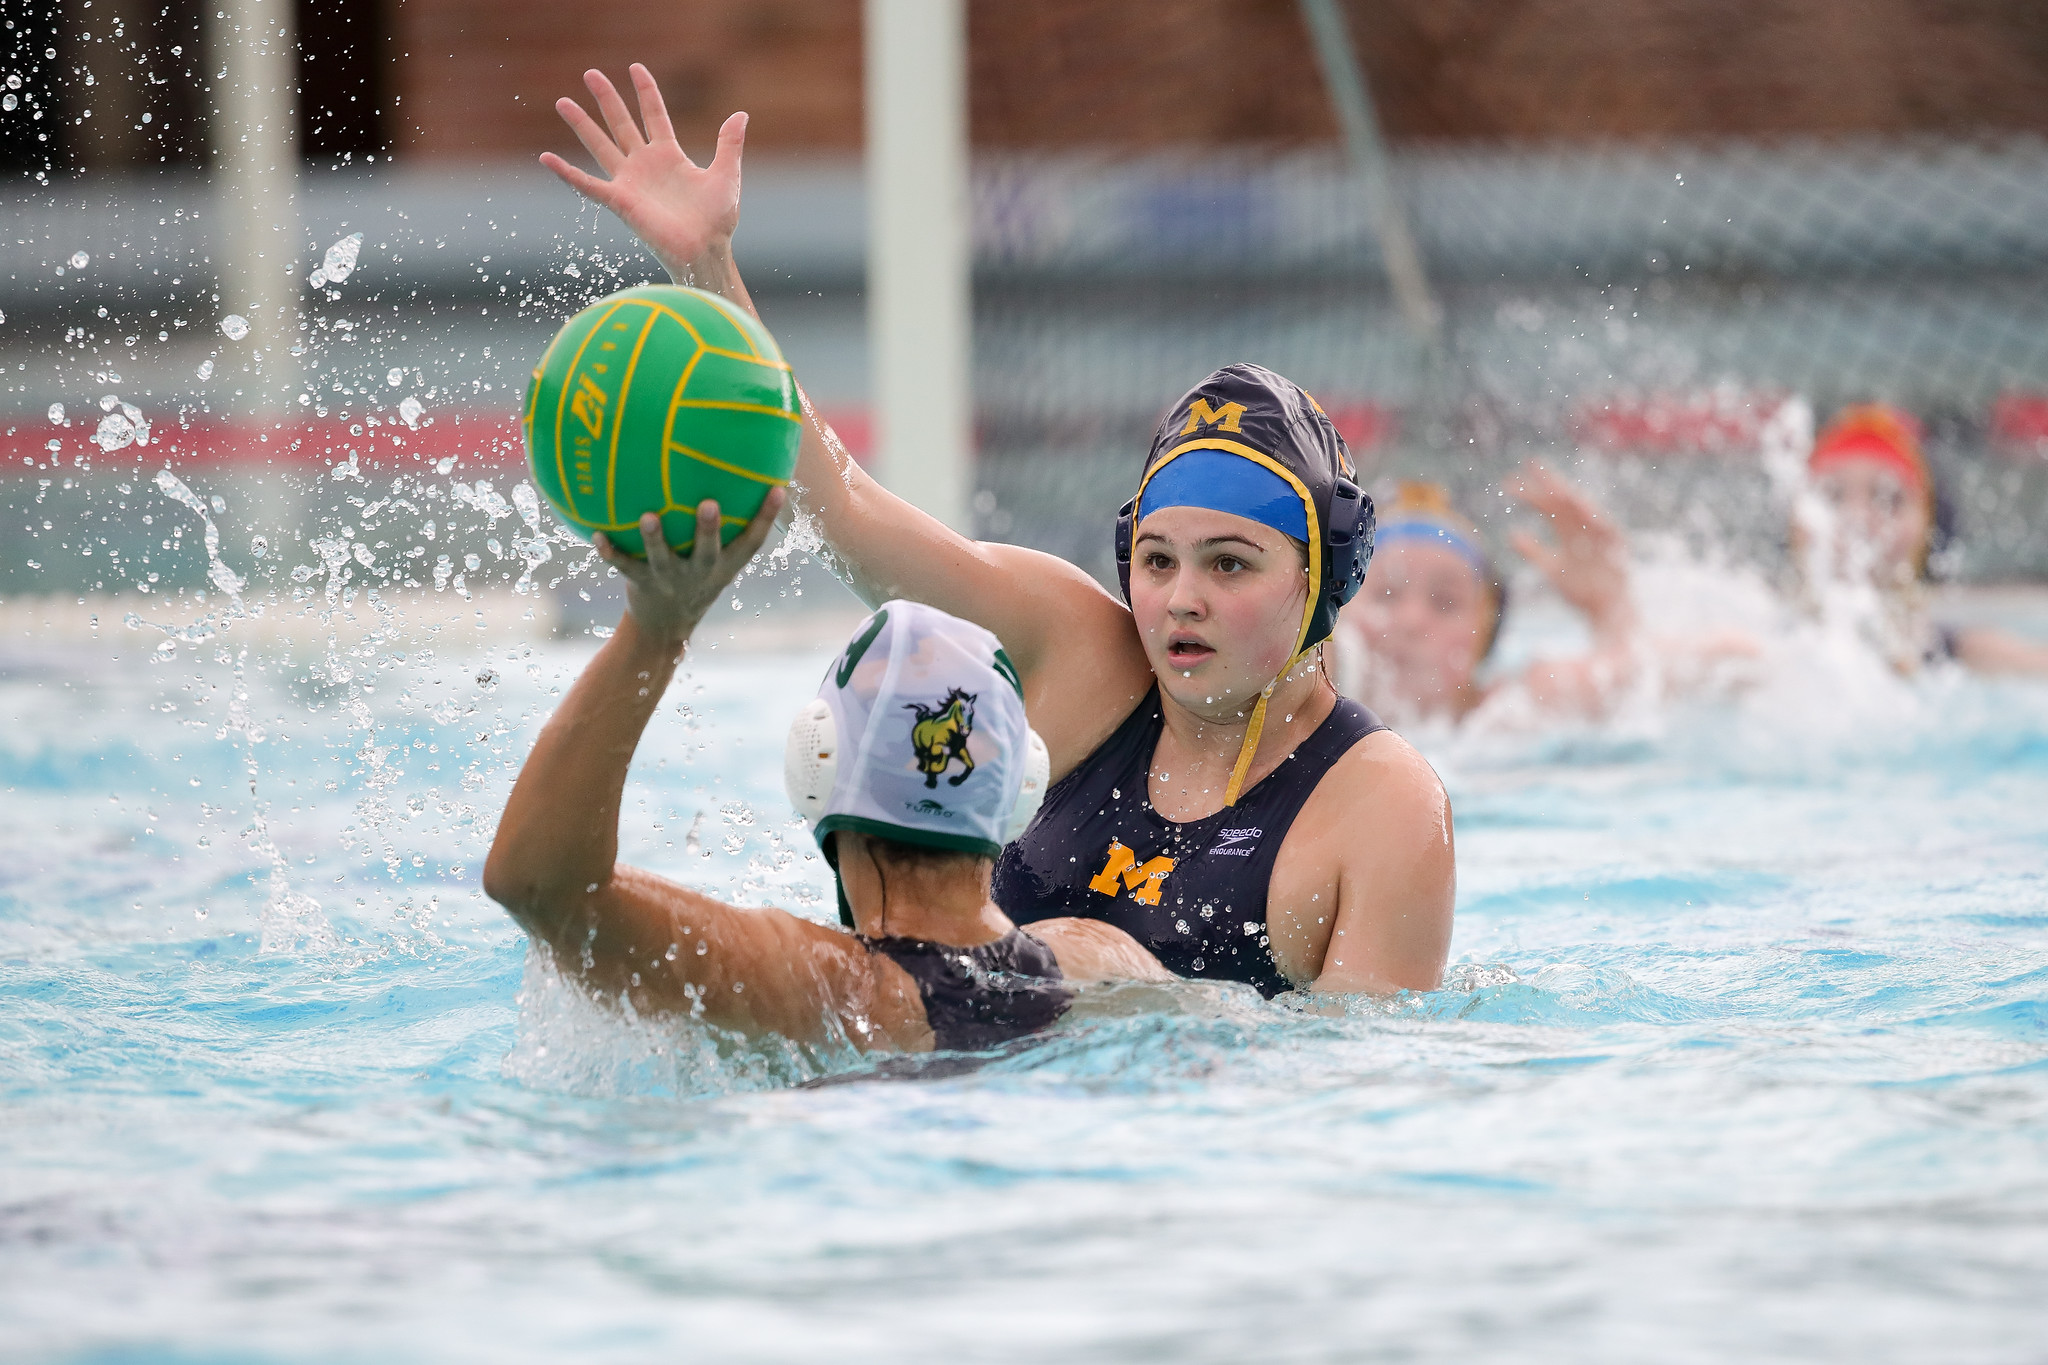 031718_UMCWP_at_Foothill_152-X4.jpg